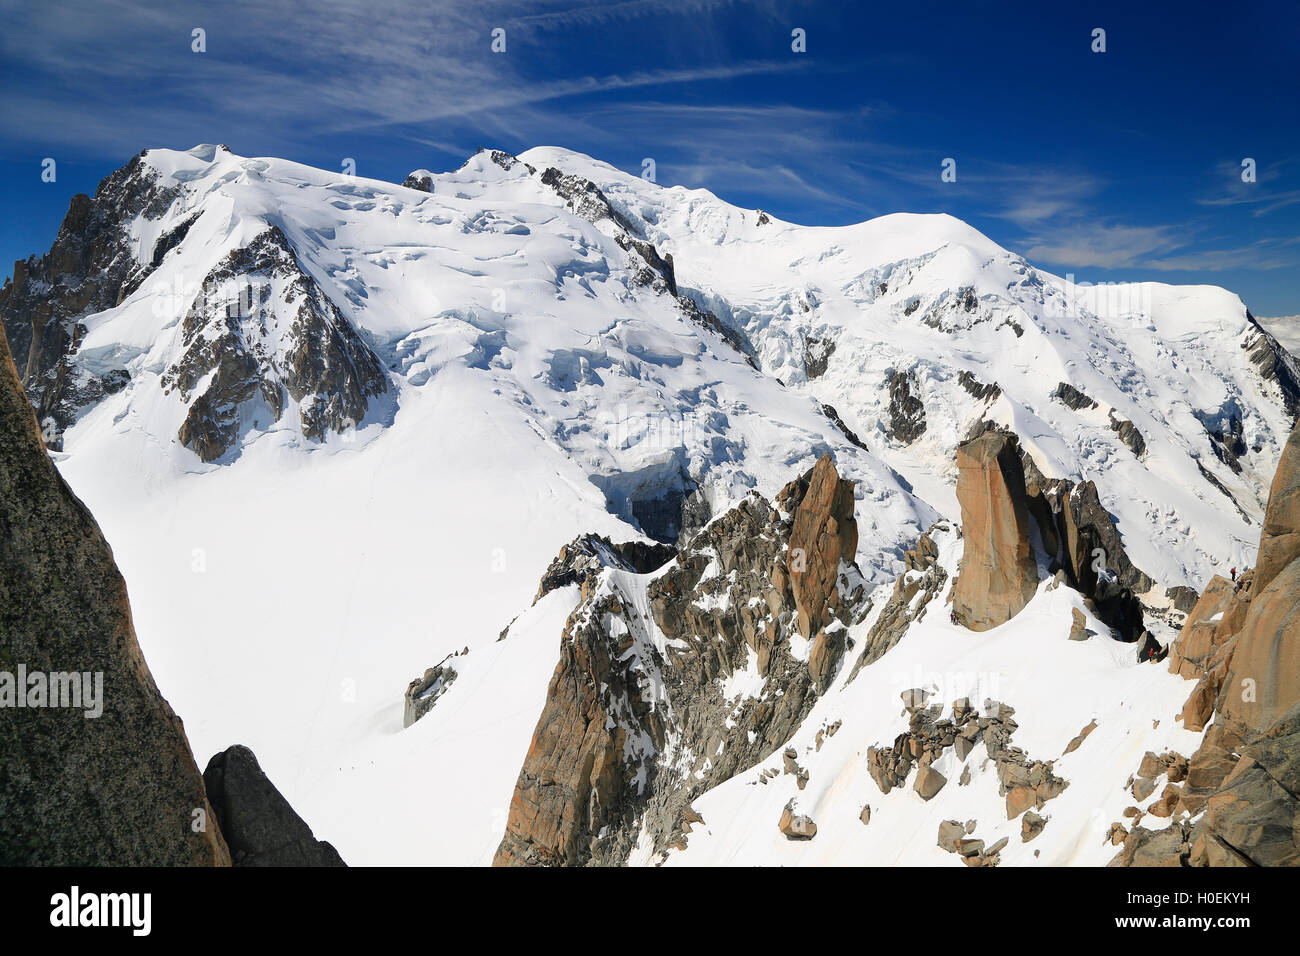 Mont Blanc viewed from Aiguille du Midi, Chamonix, France Stock Photo